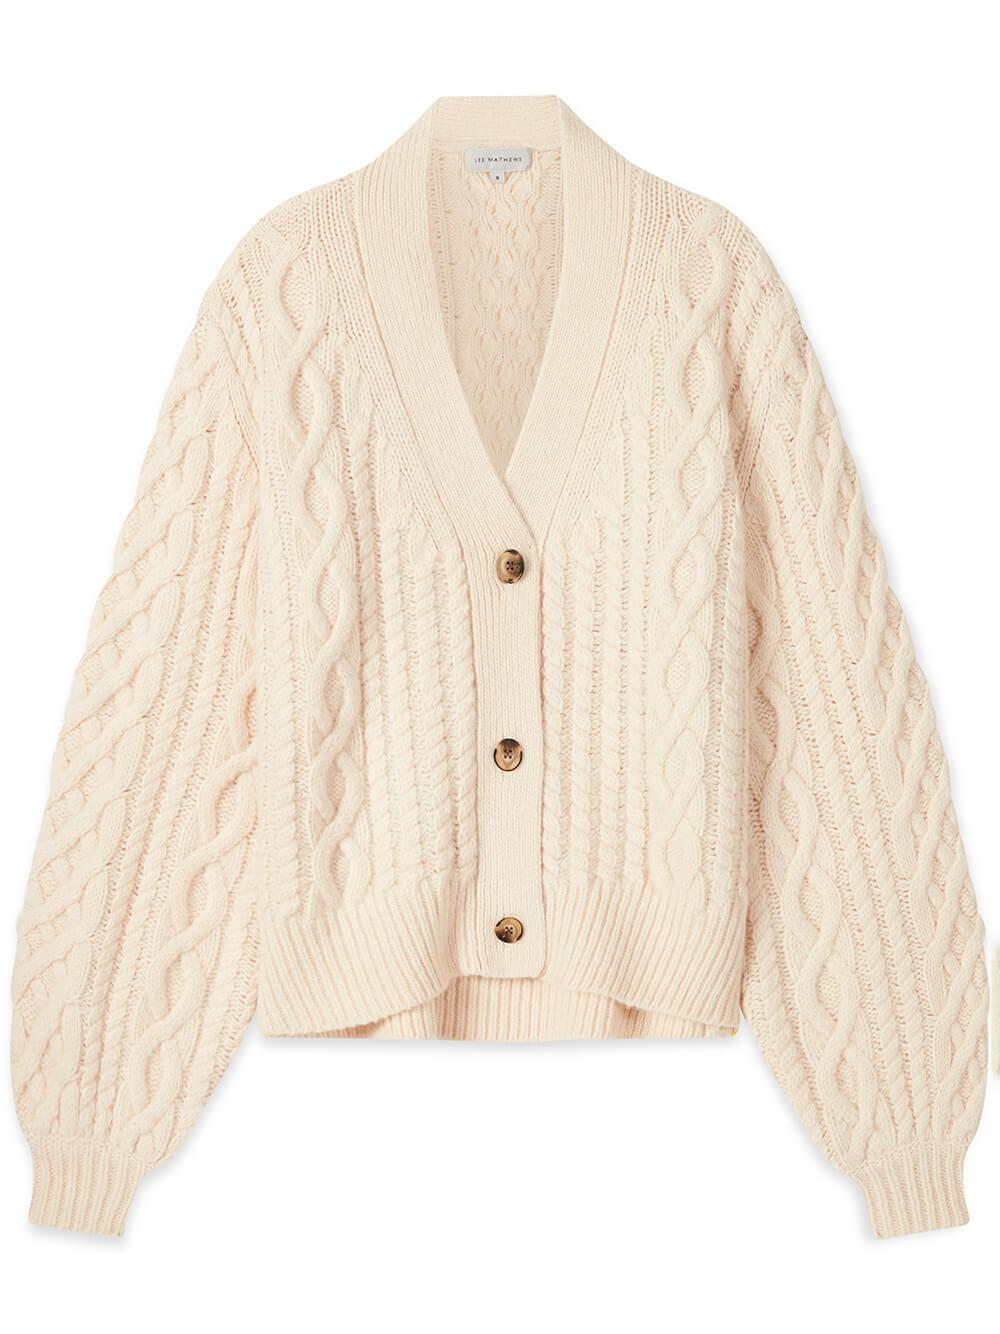 Standford Cable Knit Cardigan Item # M2103KN030